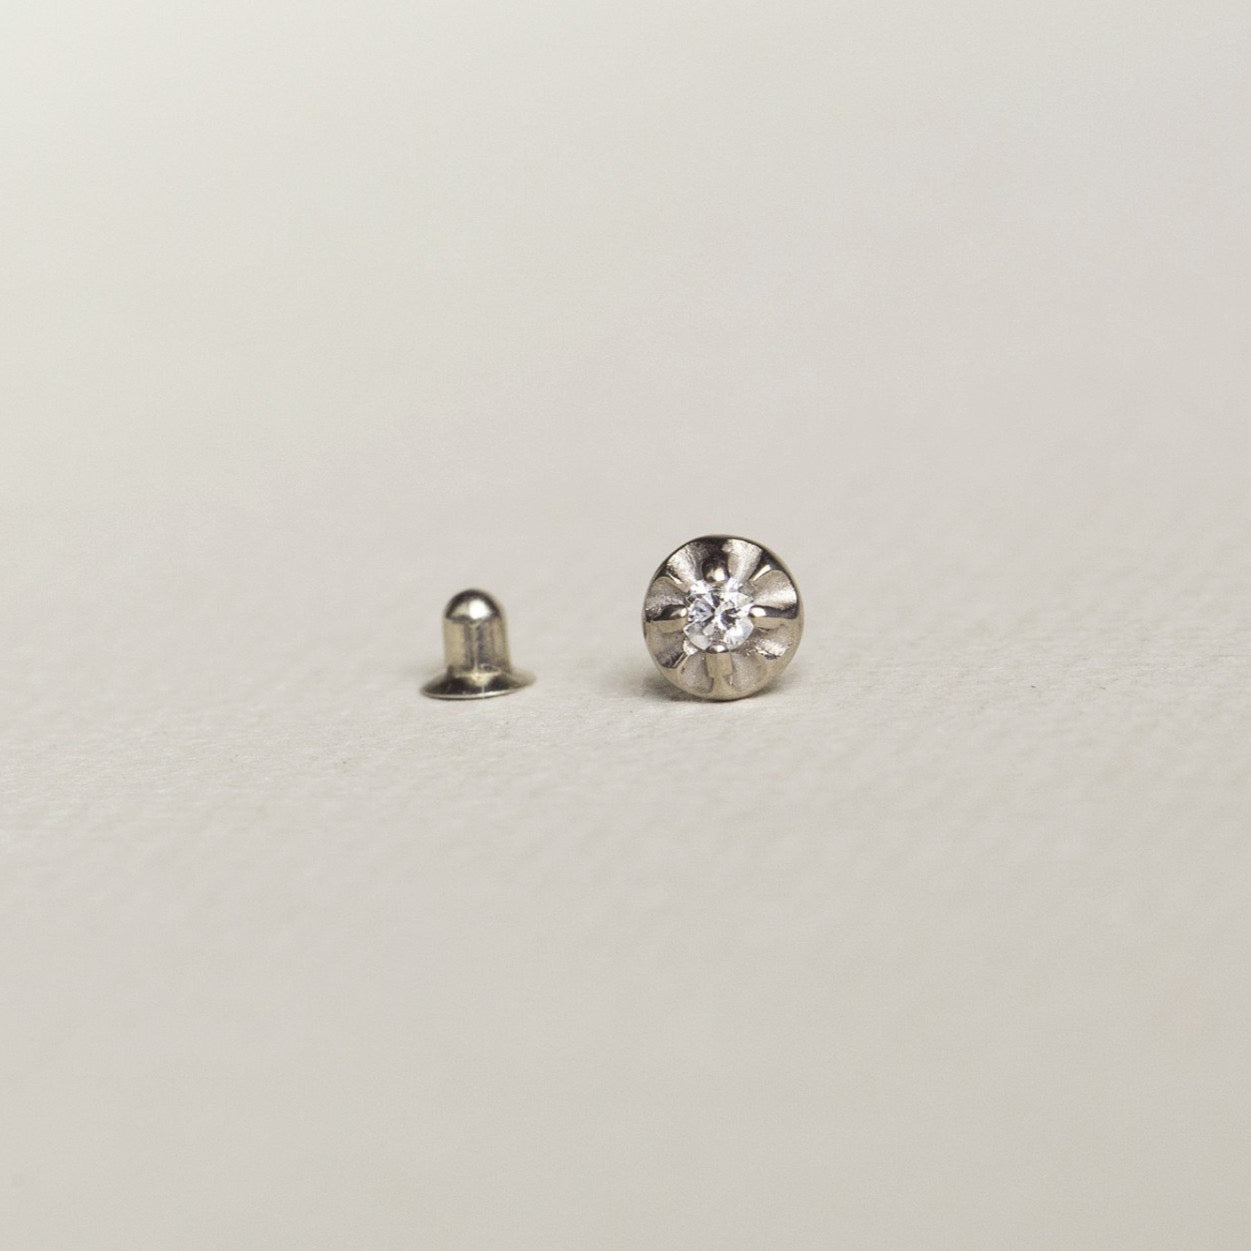 eclectic, vintage inspired starburst earring in white gold